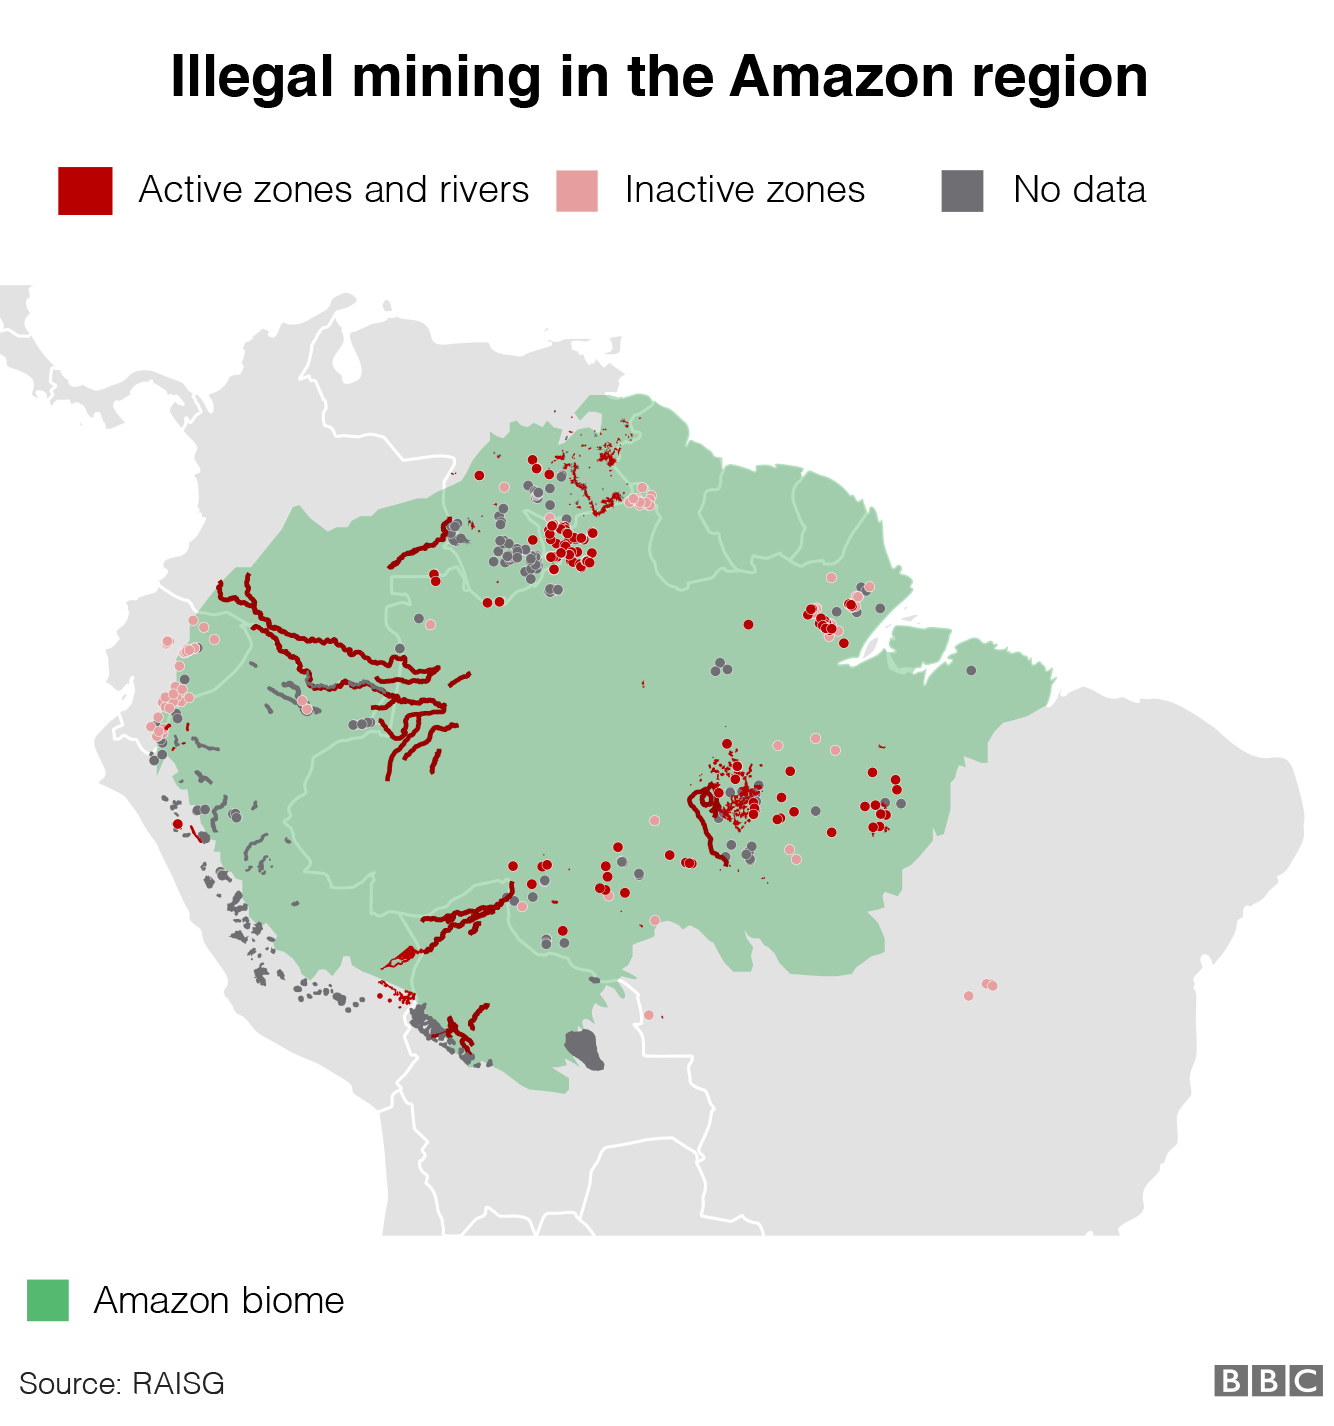 Graphic showing illegal mining in the Amazon